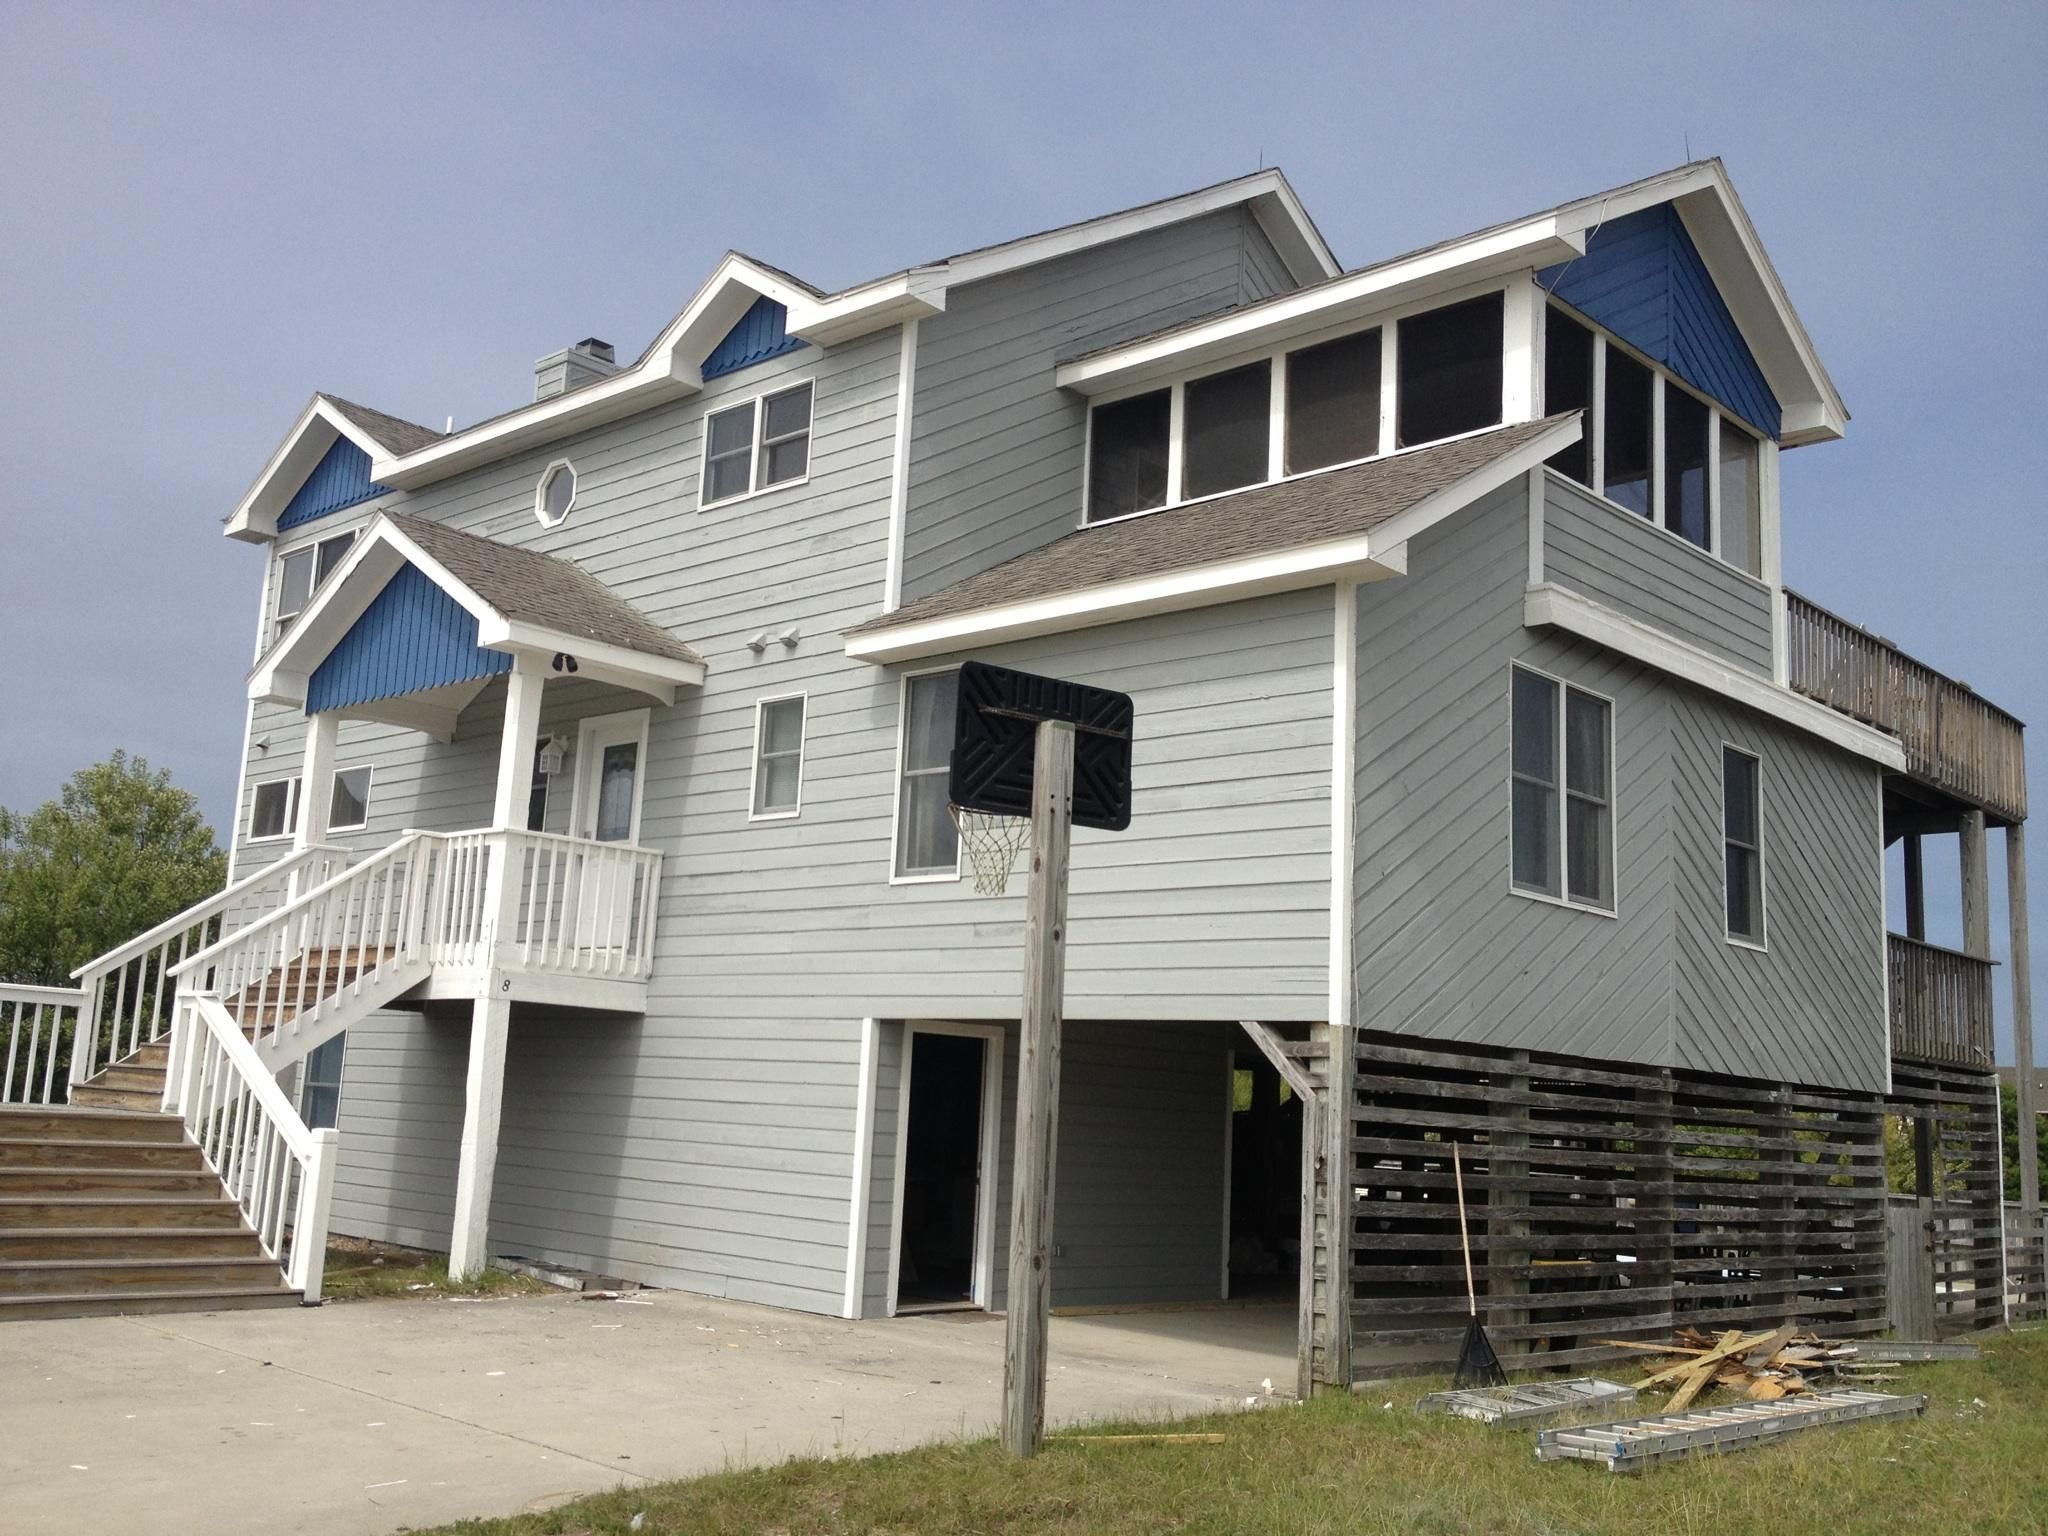 Hip Nautic 6 Bedroom House For Rent In Corolla Nc Renting A